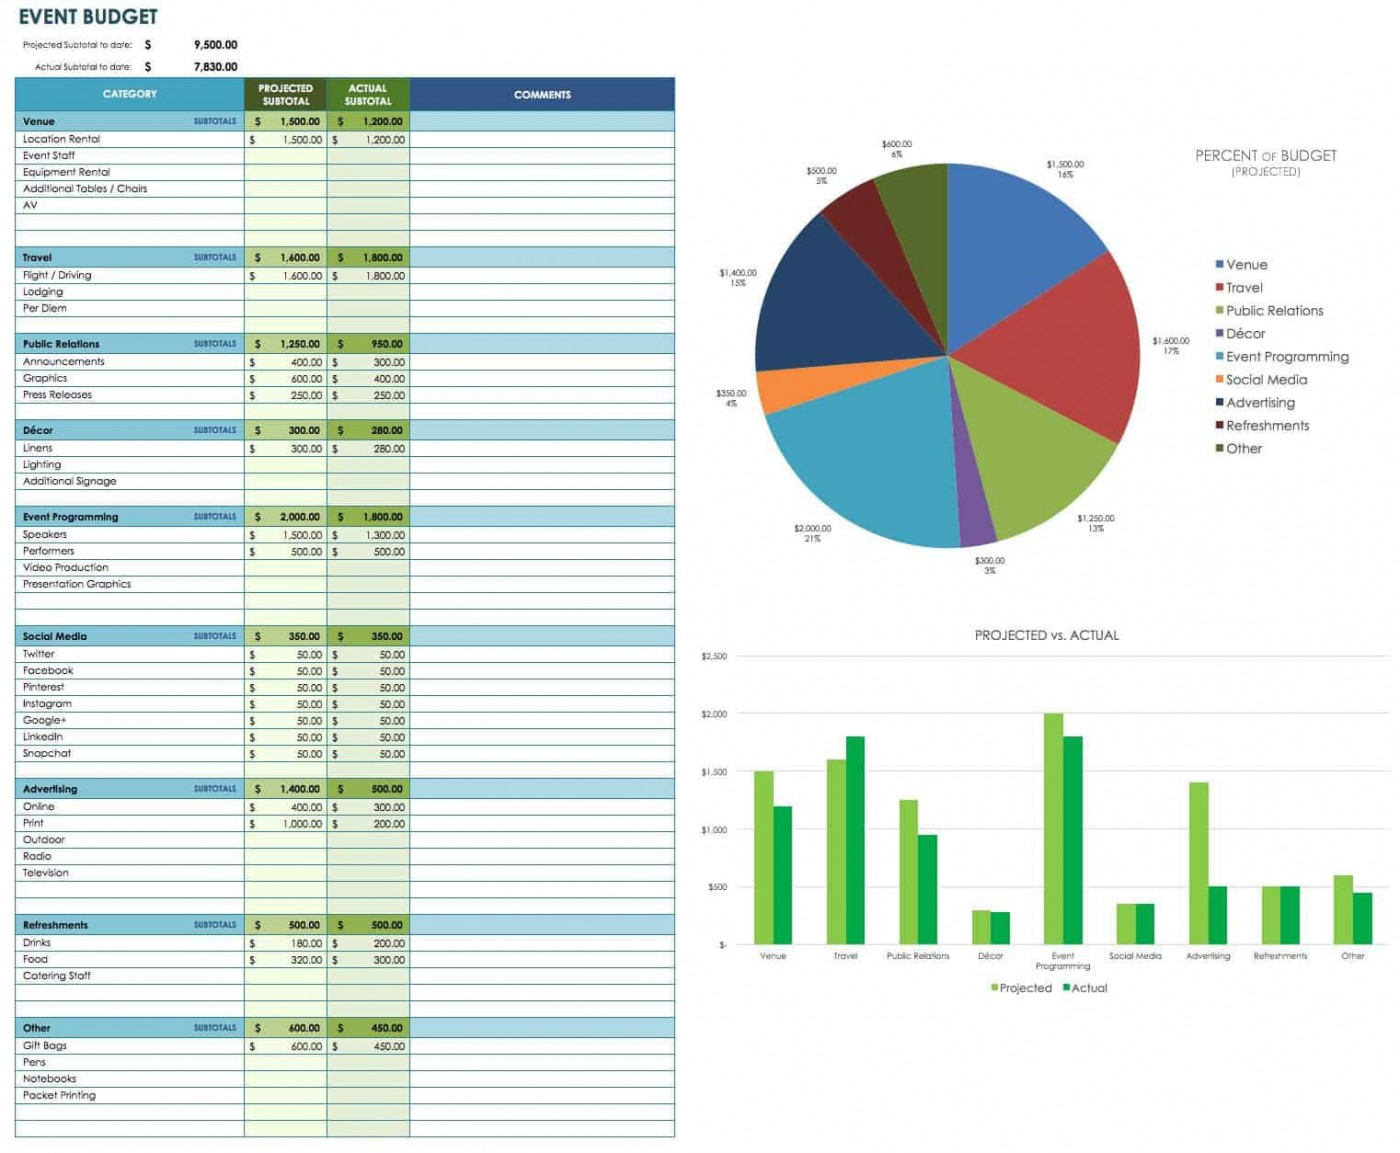 006 Wondrou Event Planner Budget Template Excel Concept  Party Planning Spreadsheet1400